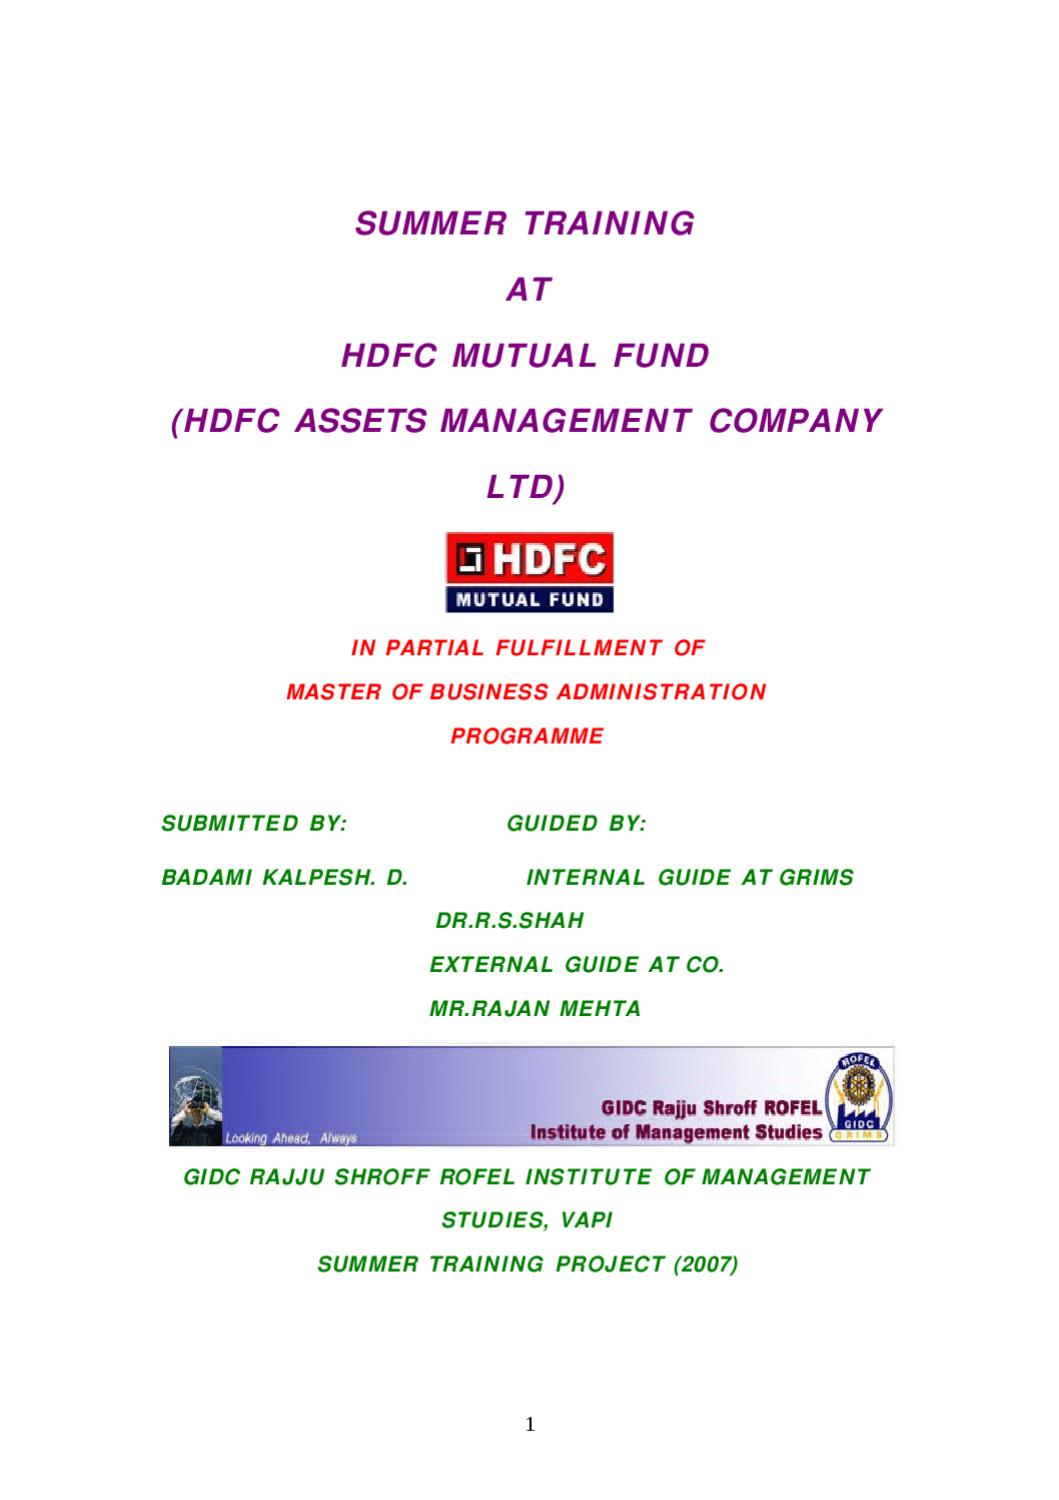 HDFC MUTUAL FUND (HDFC ASSETS MANAGEMENT COMPANY LTD) by Sanjay ...